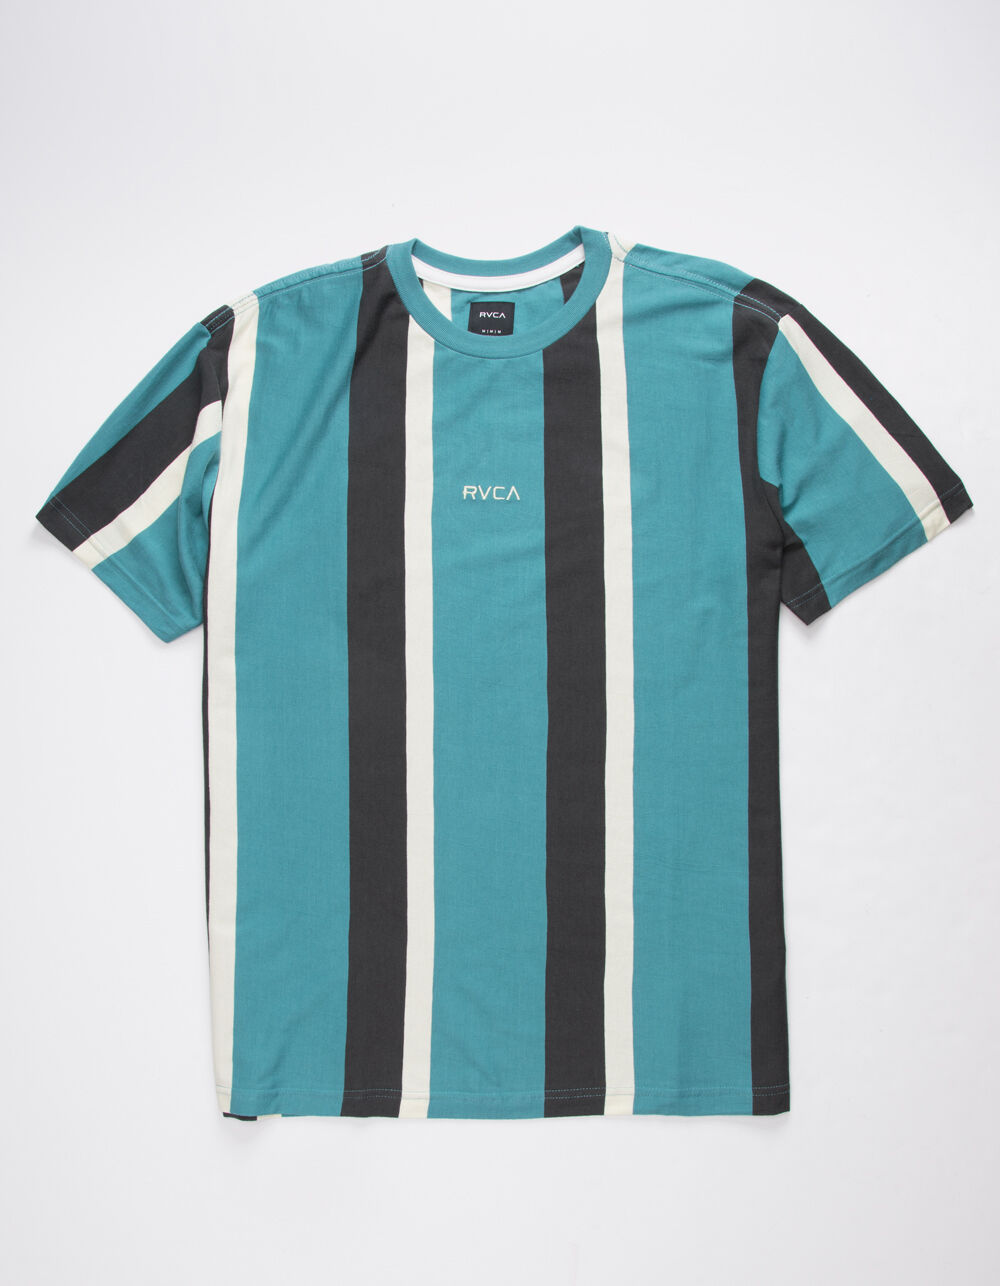 RVCA Surrender Stripe Teal Blue T-Shirt